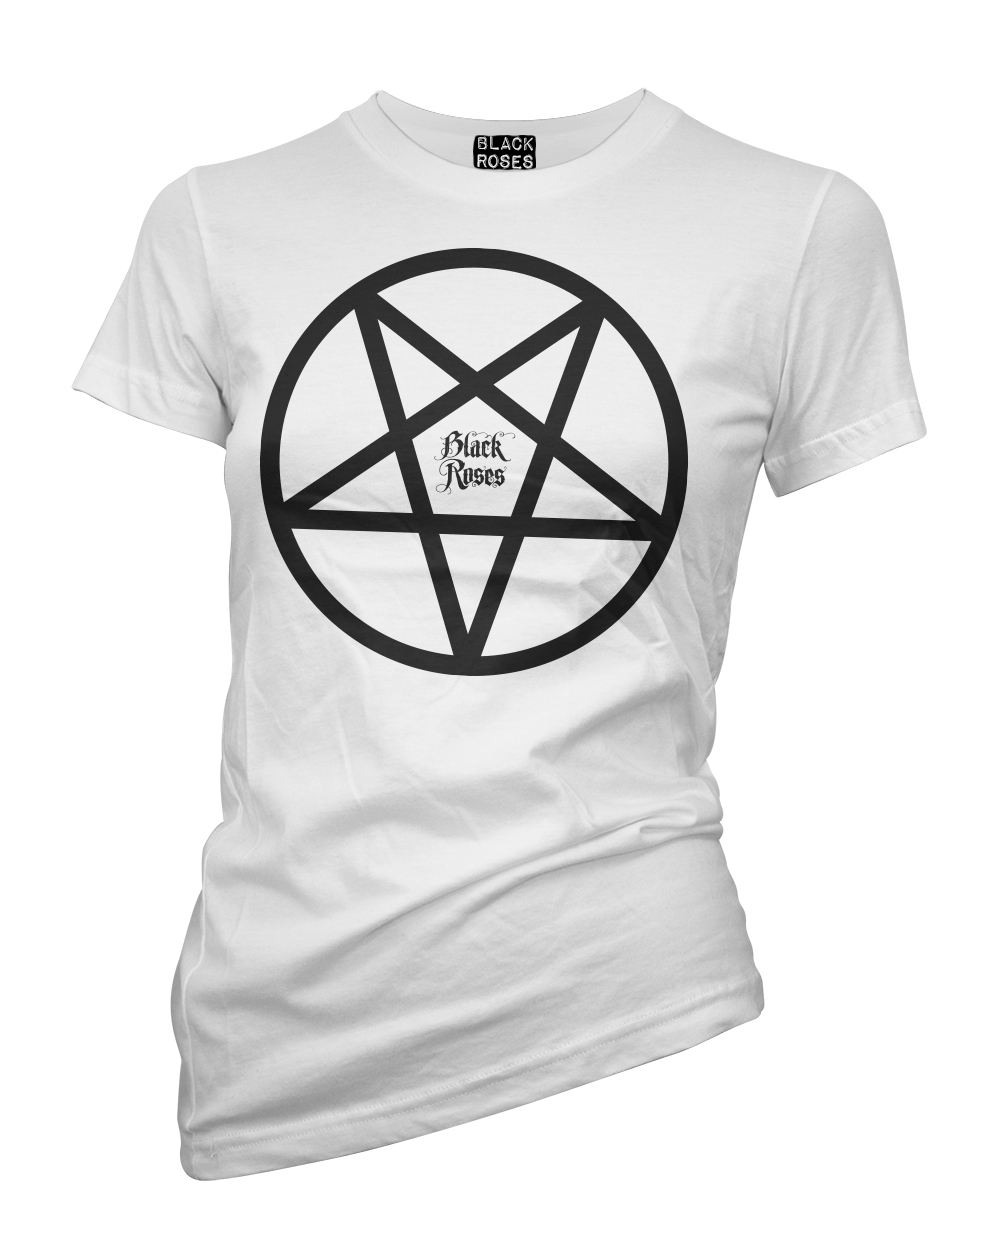 Back in black t shirt - Back In Black Pentacle Tee Shirt White